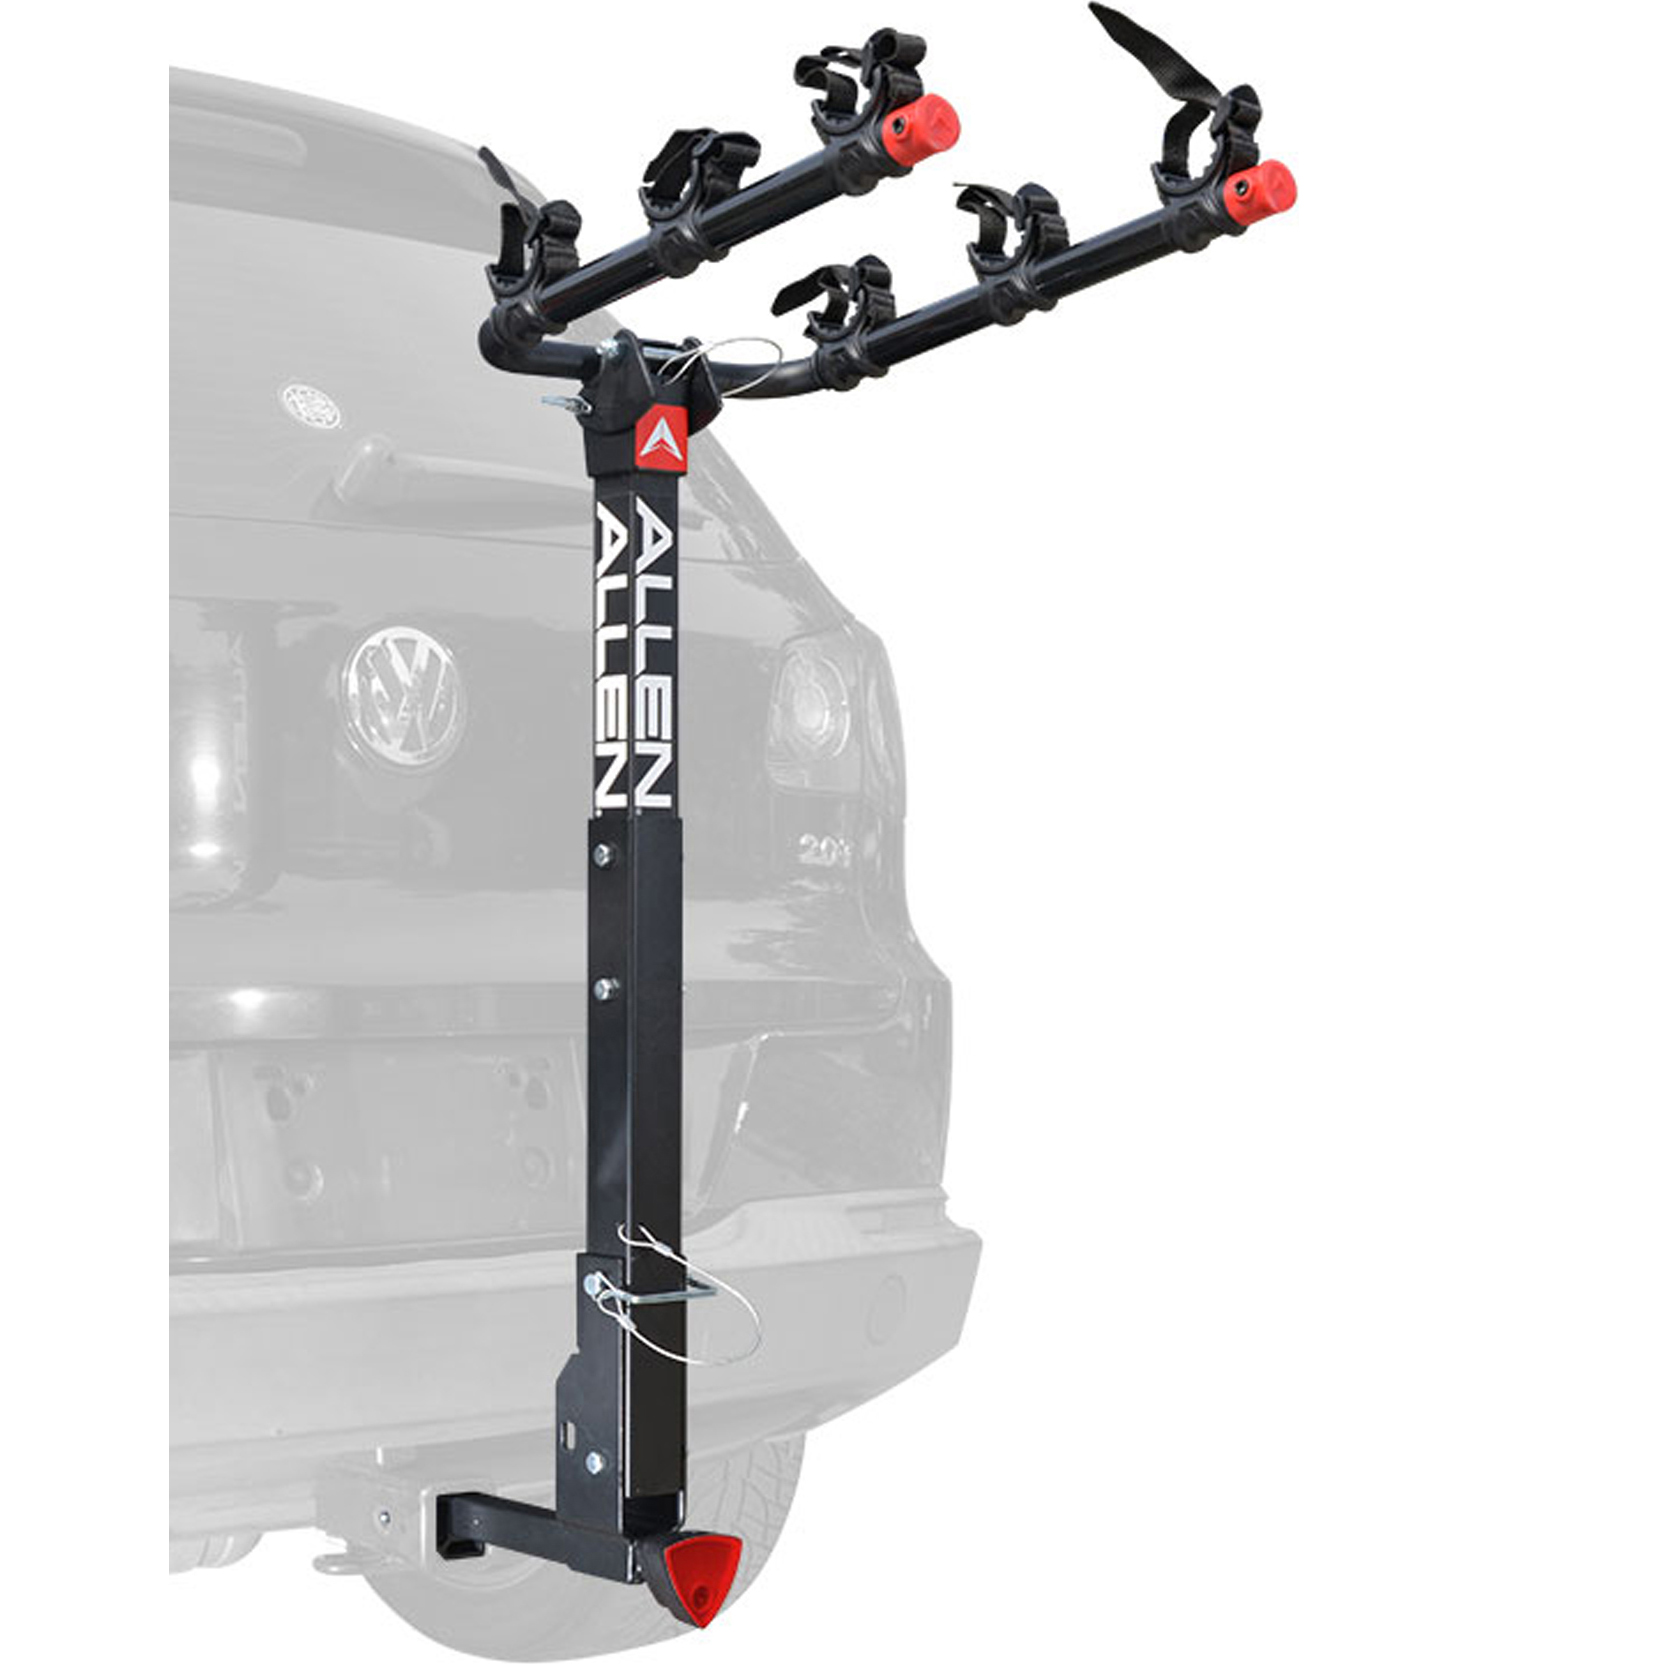 allen sports deluxe quick install locking 3 bicycle hitch mounted bike rack carrier 532qr